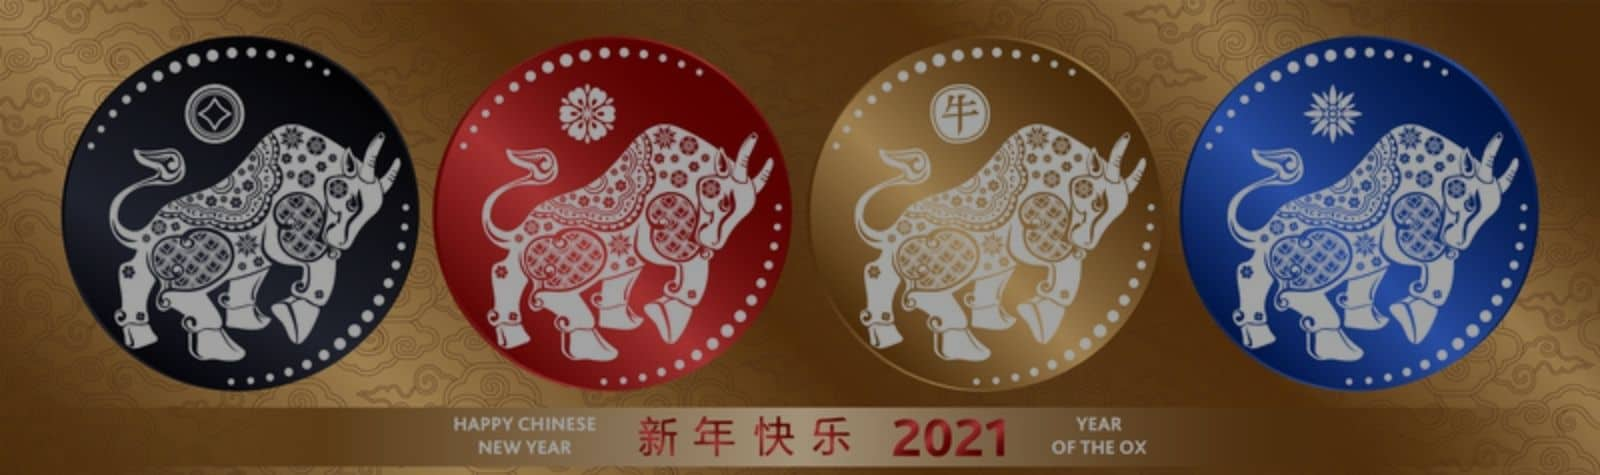 Lunar Year 2021! Avoid Taboos & Engage in Traditions for Good Luck!